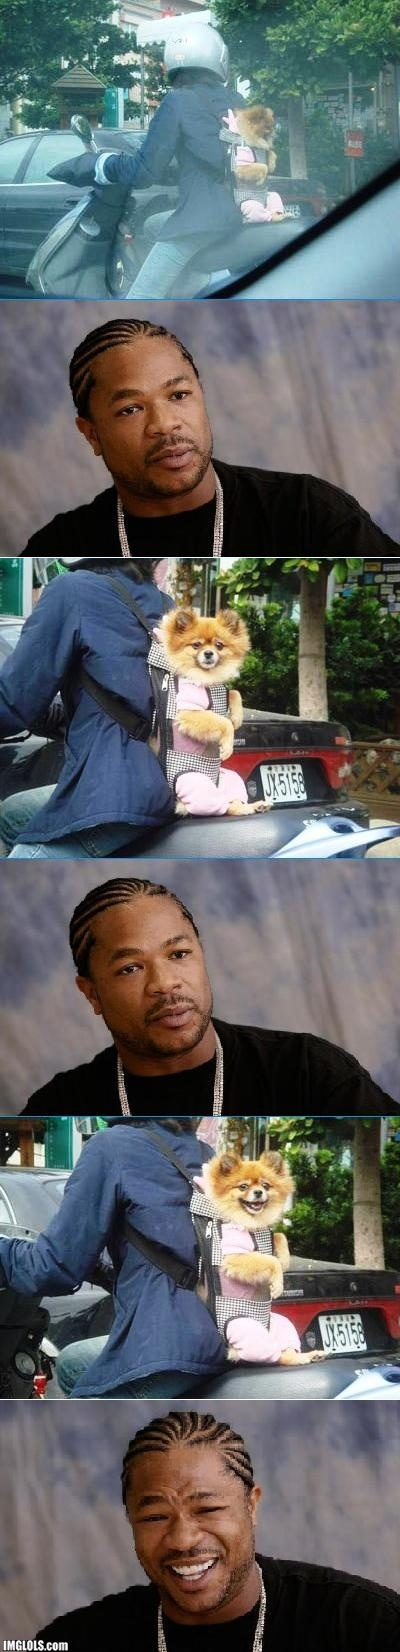 Xzibit vs Dog